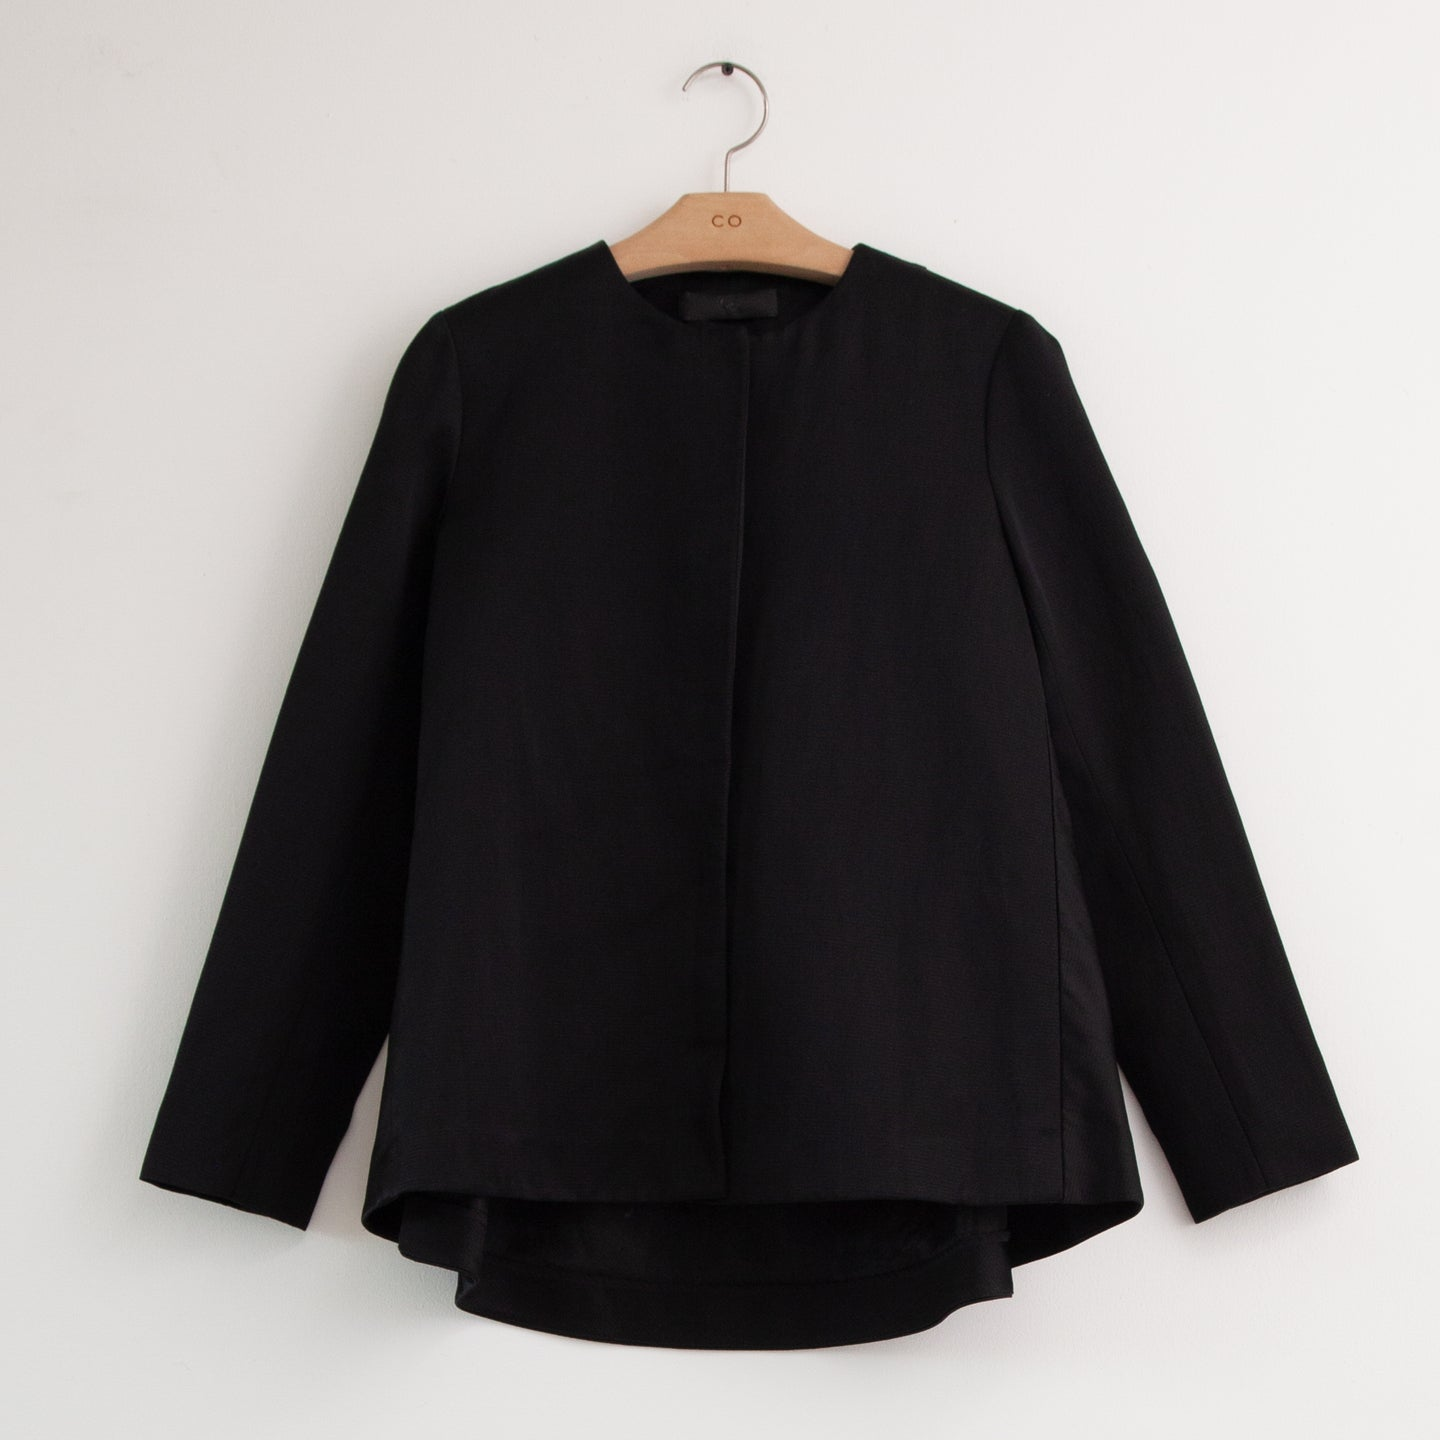 A line long sleeve snap front jacket in black cotton twill - CO